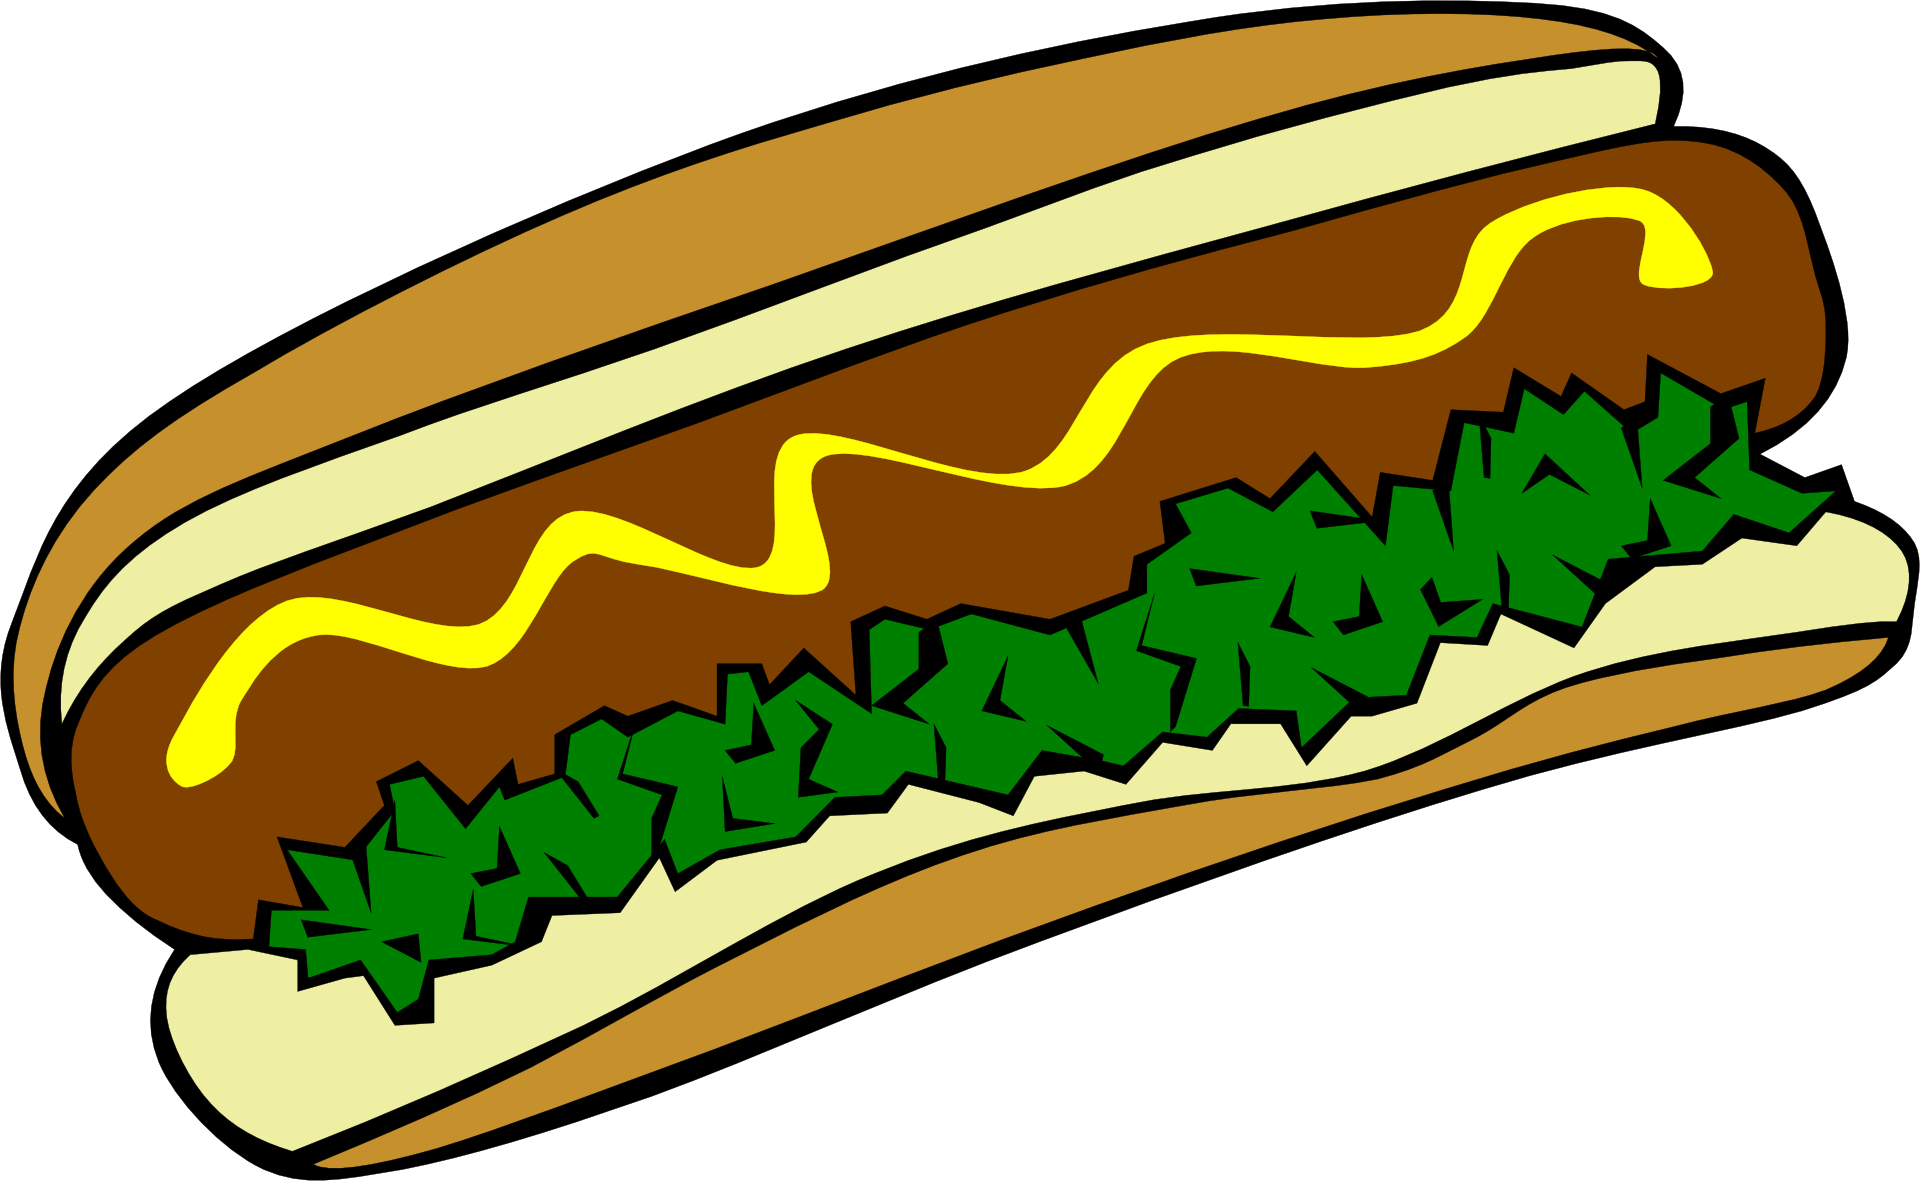 Hot dog grilling clipart picture transparent download Hot dog Hamburger Fast food Barbecue grill Clip art - hot dog 1920 ... picture transparent download